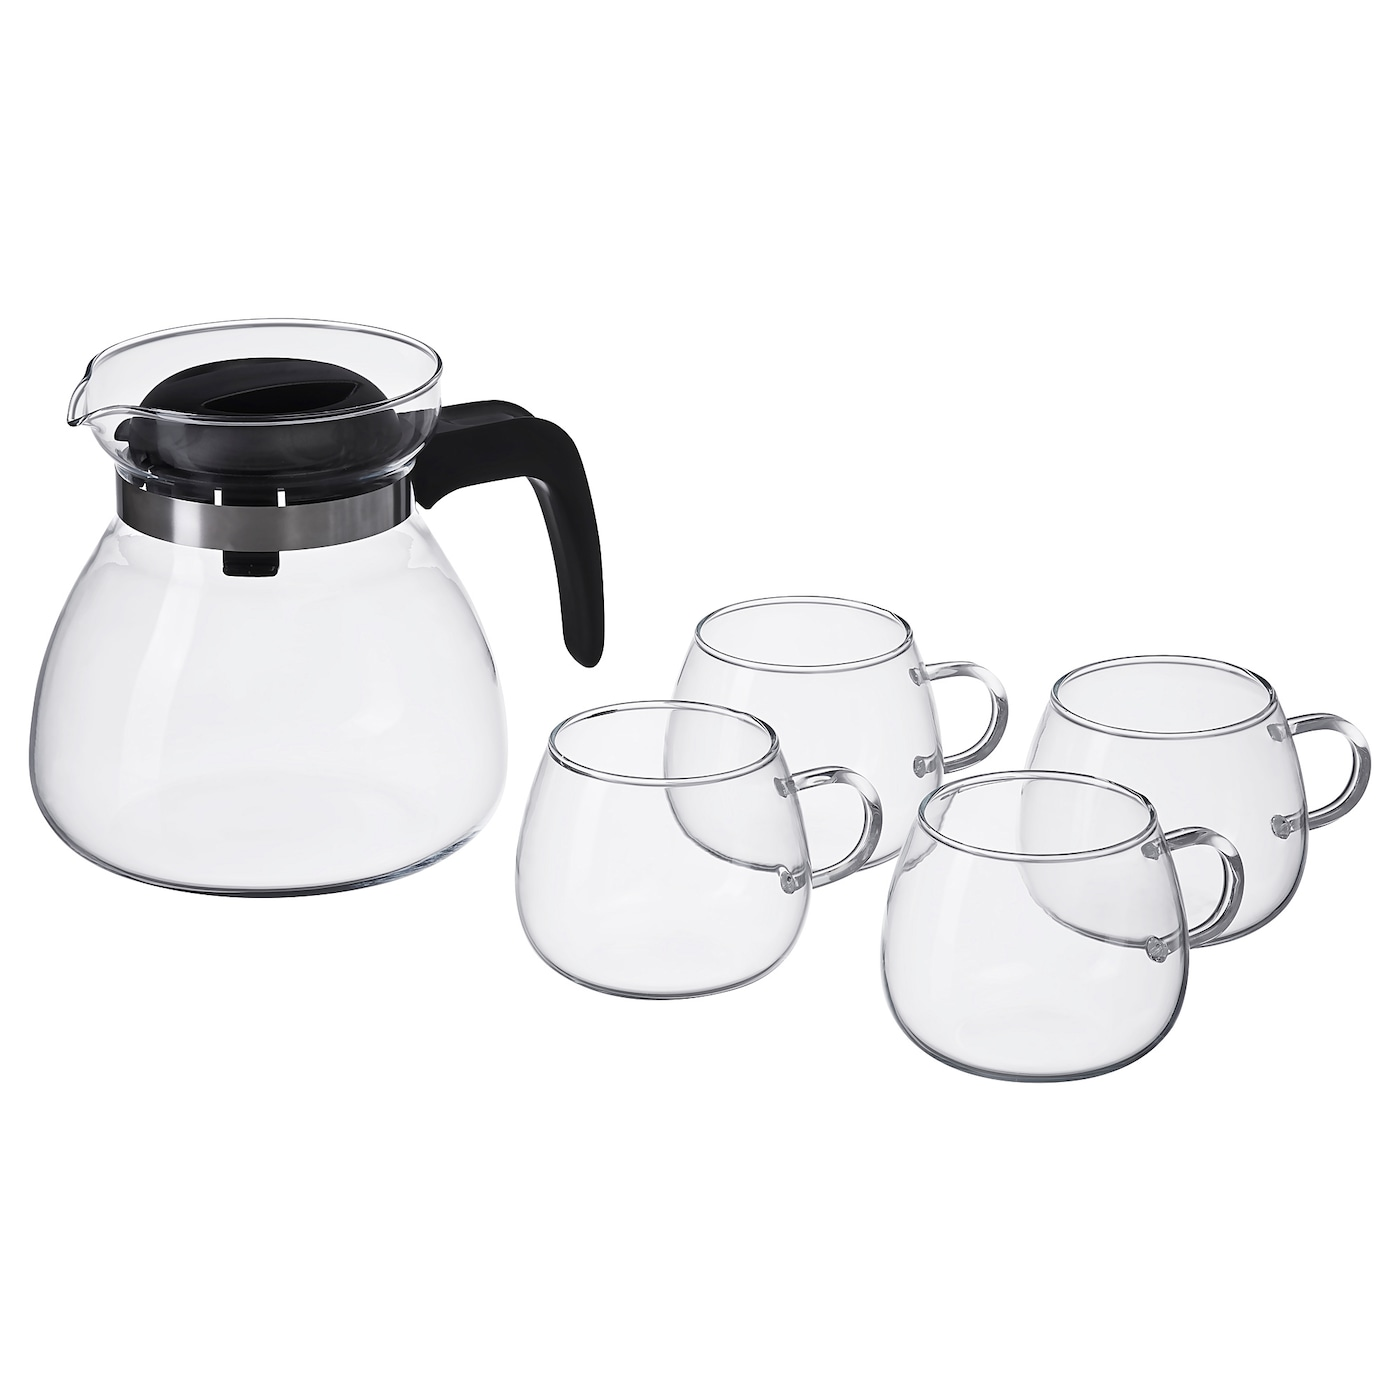 IKEA GLASBULT 5-piece tea/coffee set